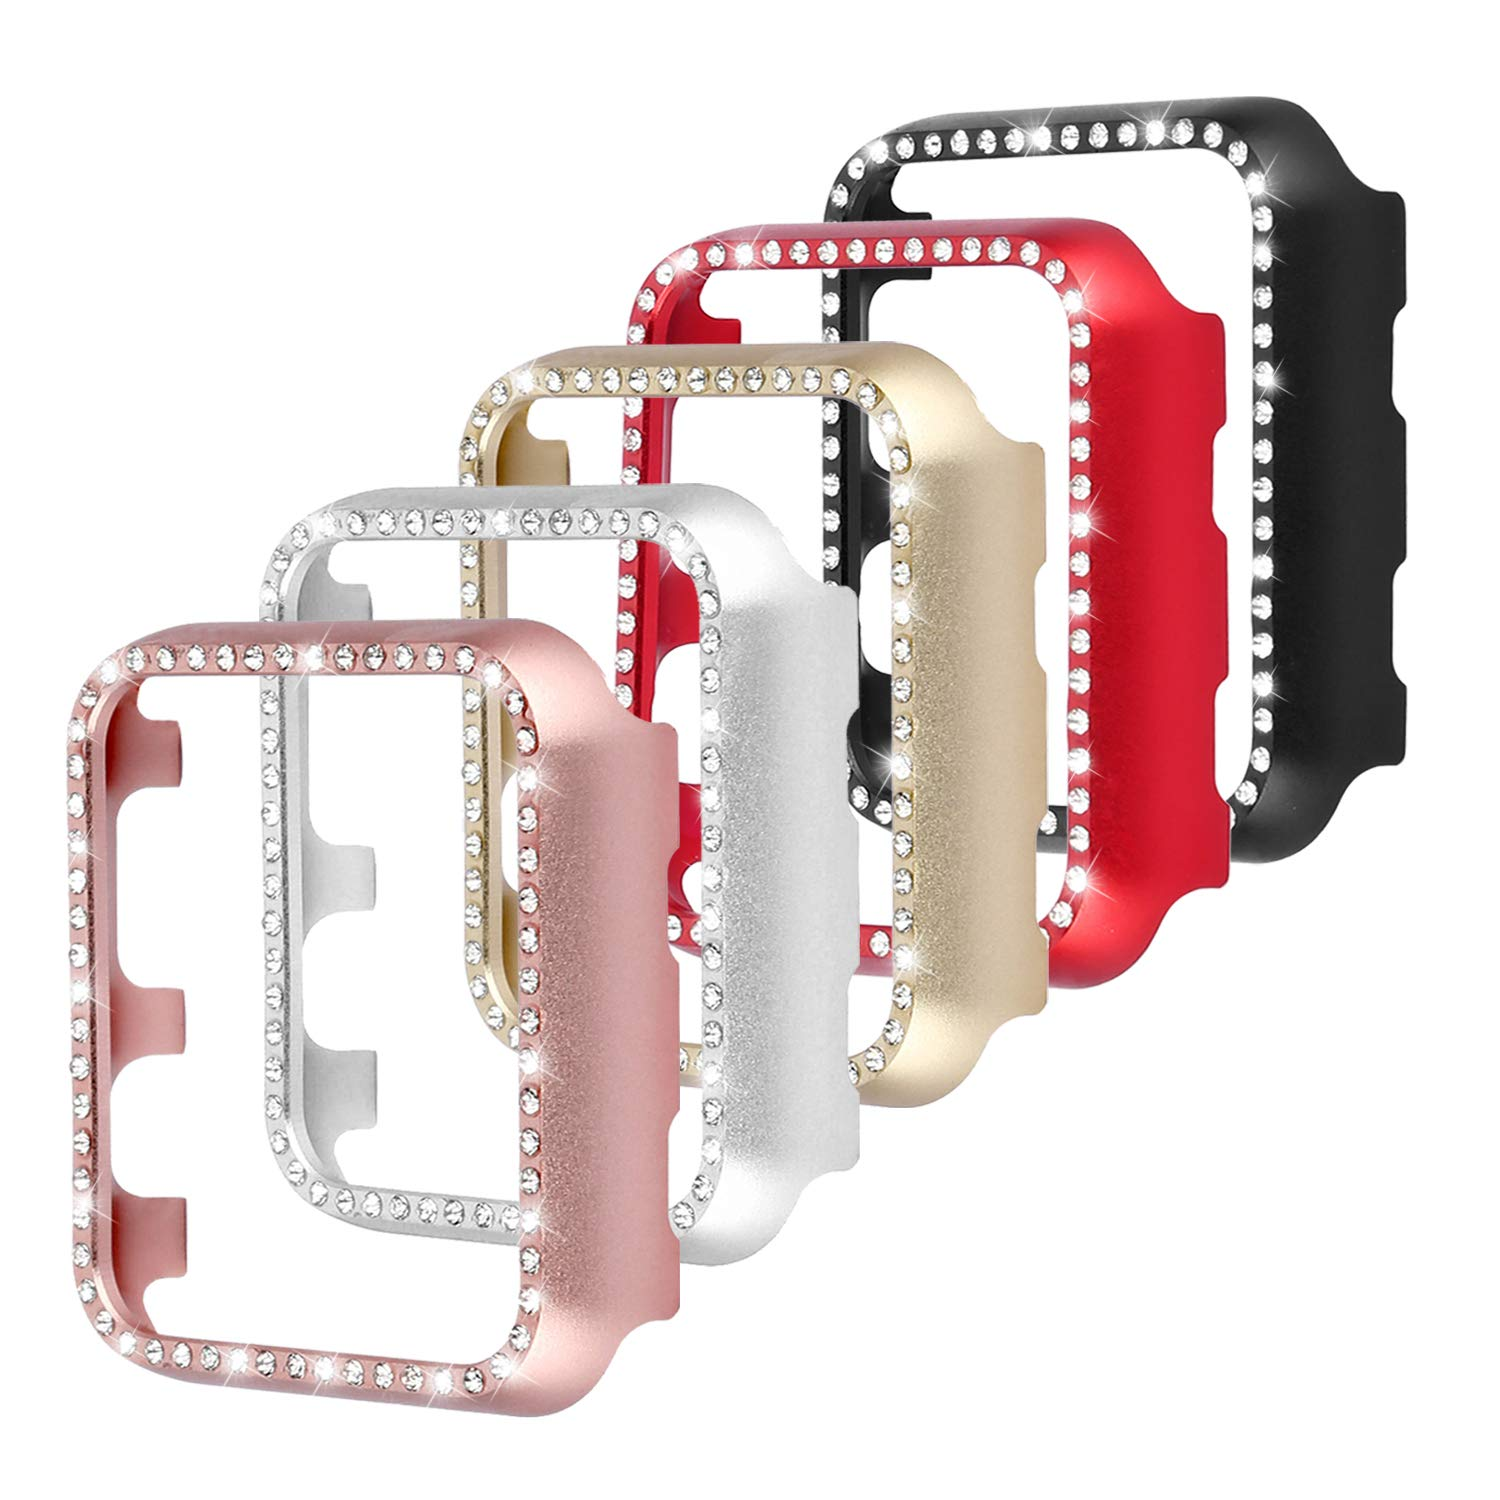 Leotop Compatible with Apple Watch Case 38mm, Metal Bumper Protective Cover Frame Accessories Women Girl Bling Shiny Crystal Rhinestone Diamond Compatible iWatch Series 3/2/1 (5 Color Pack, 38mm) by Leotop